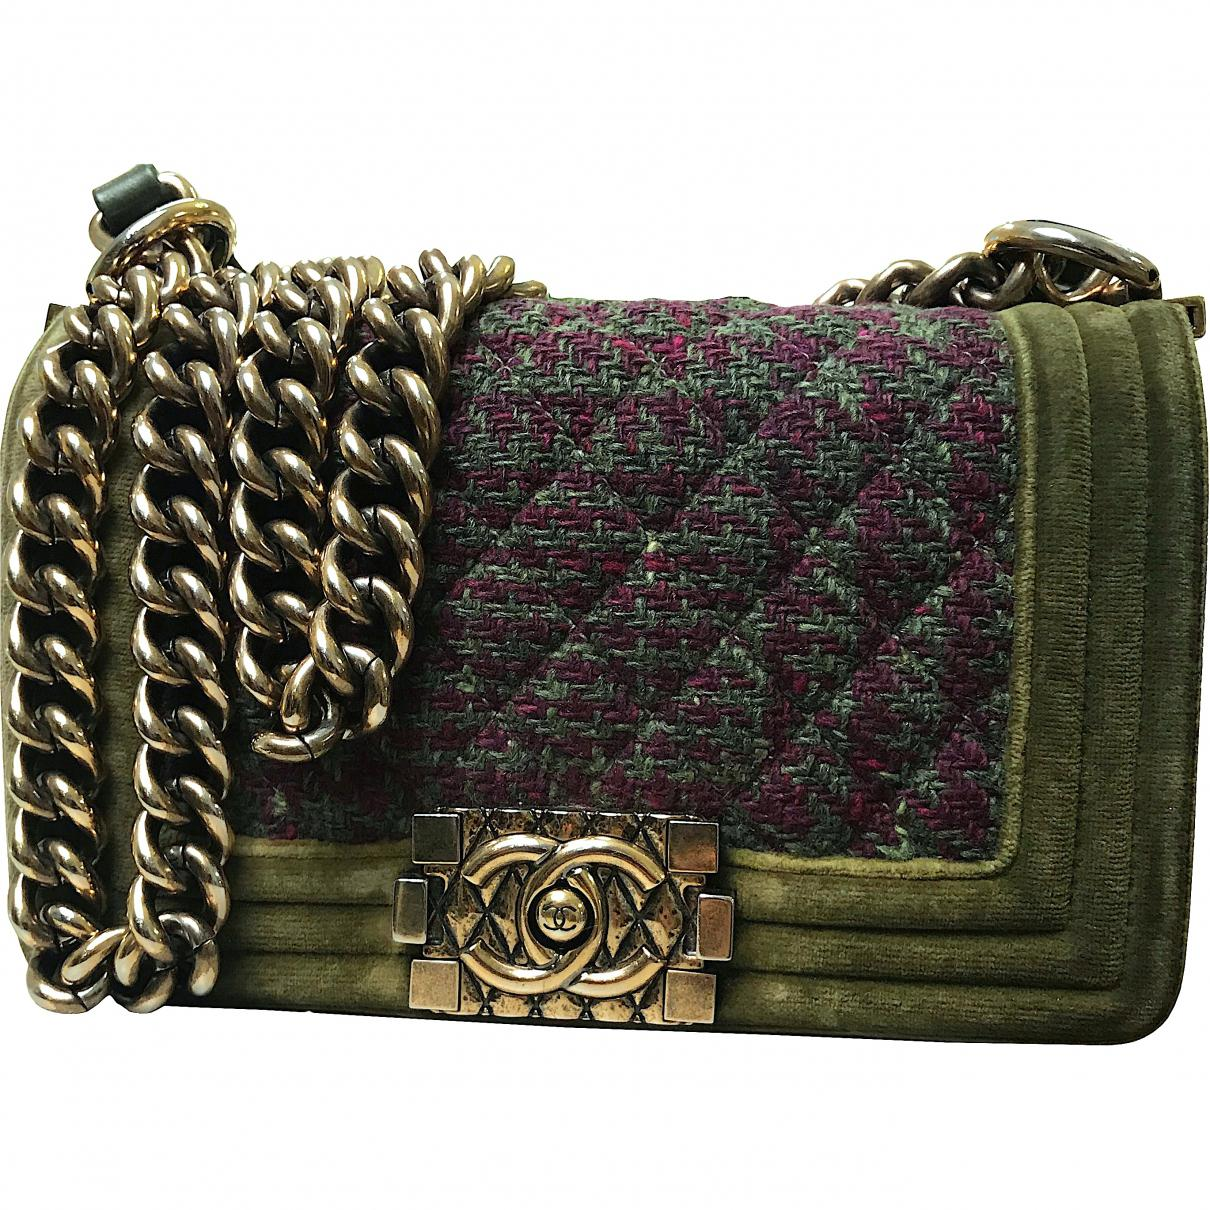 7cc2fe89ad358e Chanel Pre-owned Boy Tweed Crossbody Bag in Green - Lyst